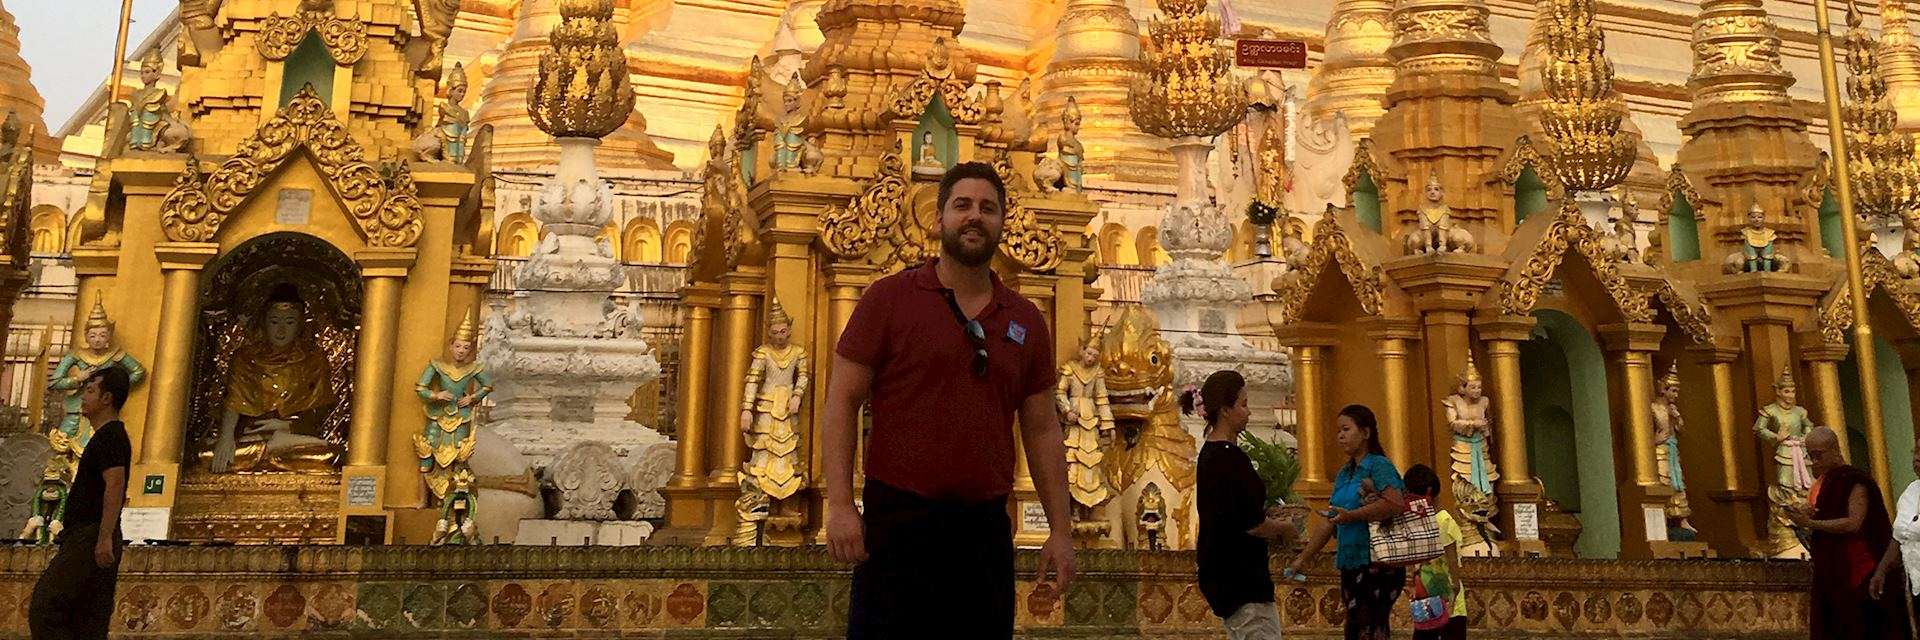 Tom visiting the Shwedegon Pagoda, Yangon, Myanmar